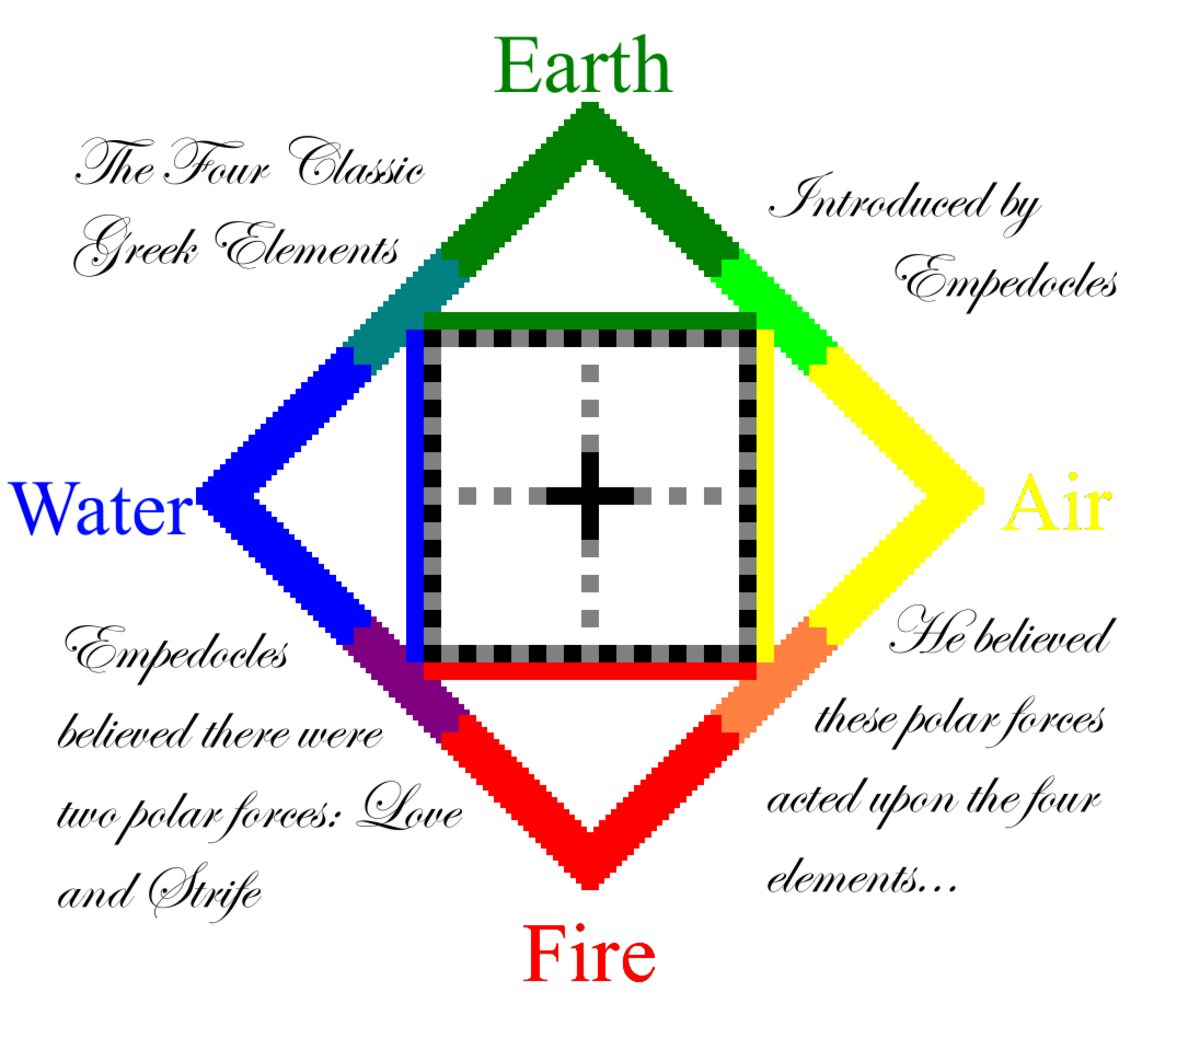 Empedocles introduced the concept of the four elements and their relation to the polar forces.